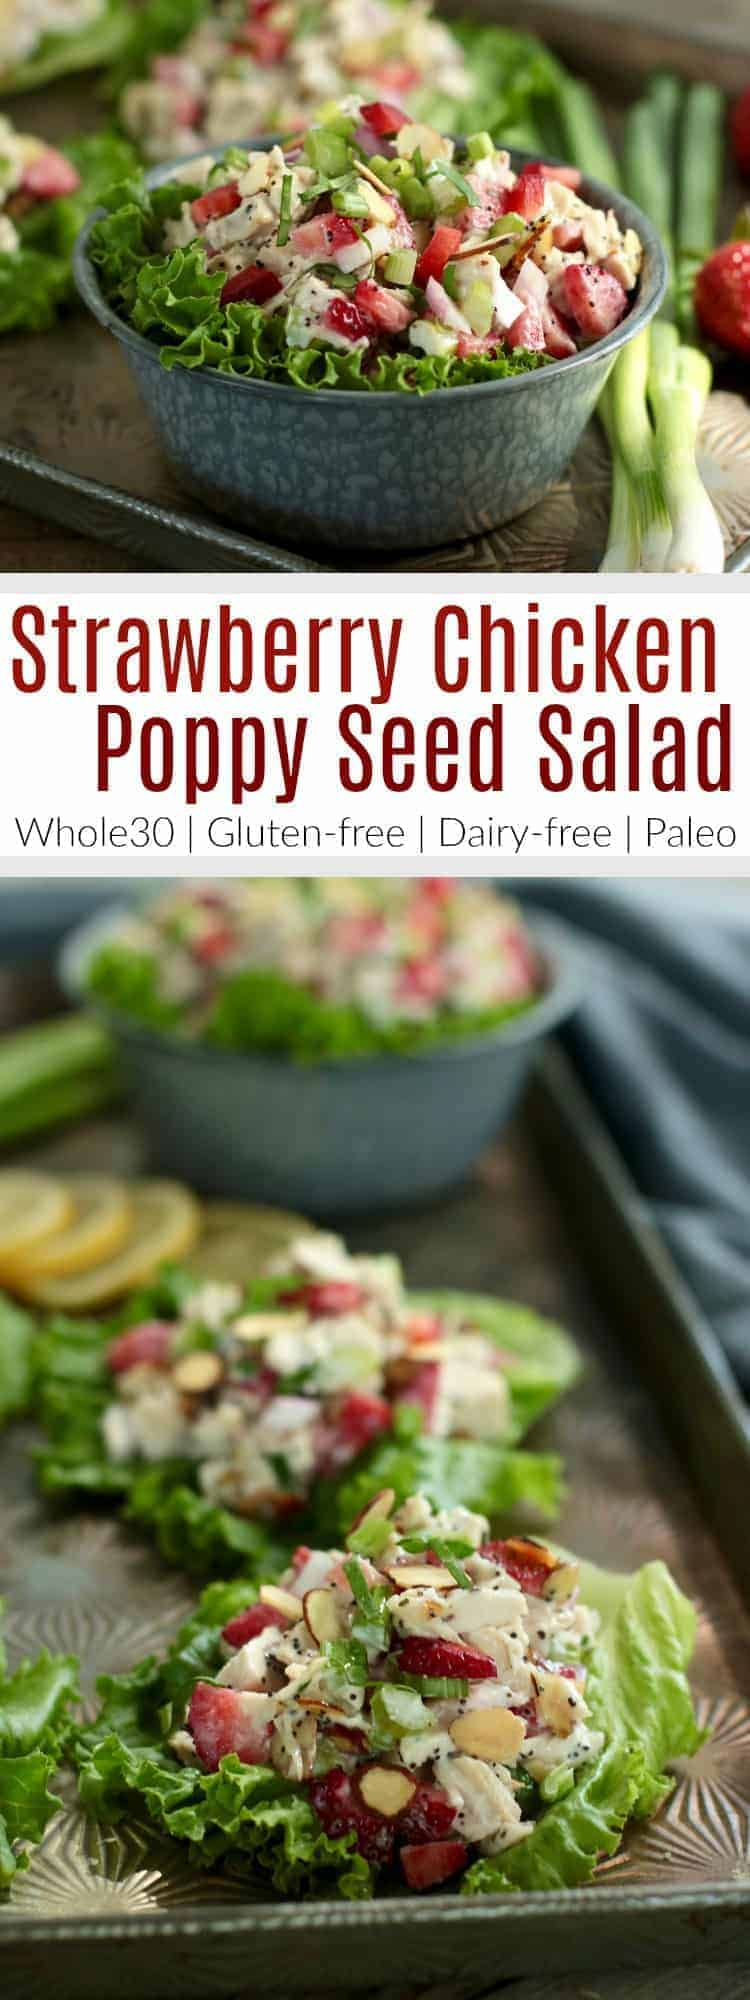 Pinterest image for Strawberry Chicken Poppy Seed Salad